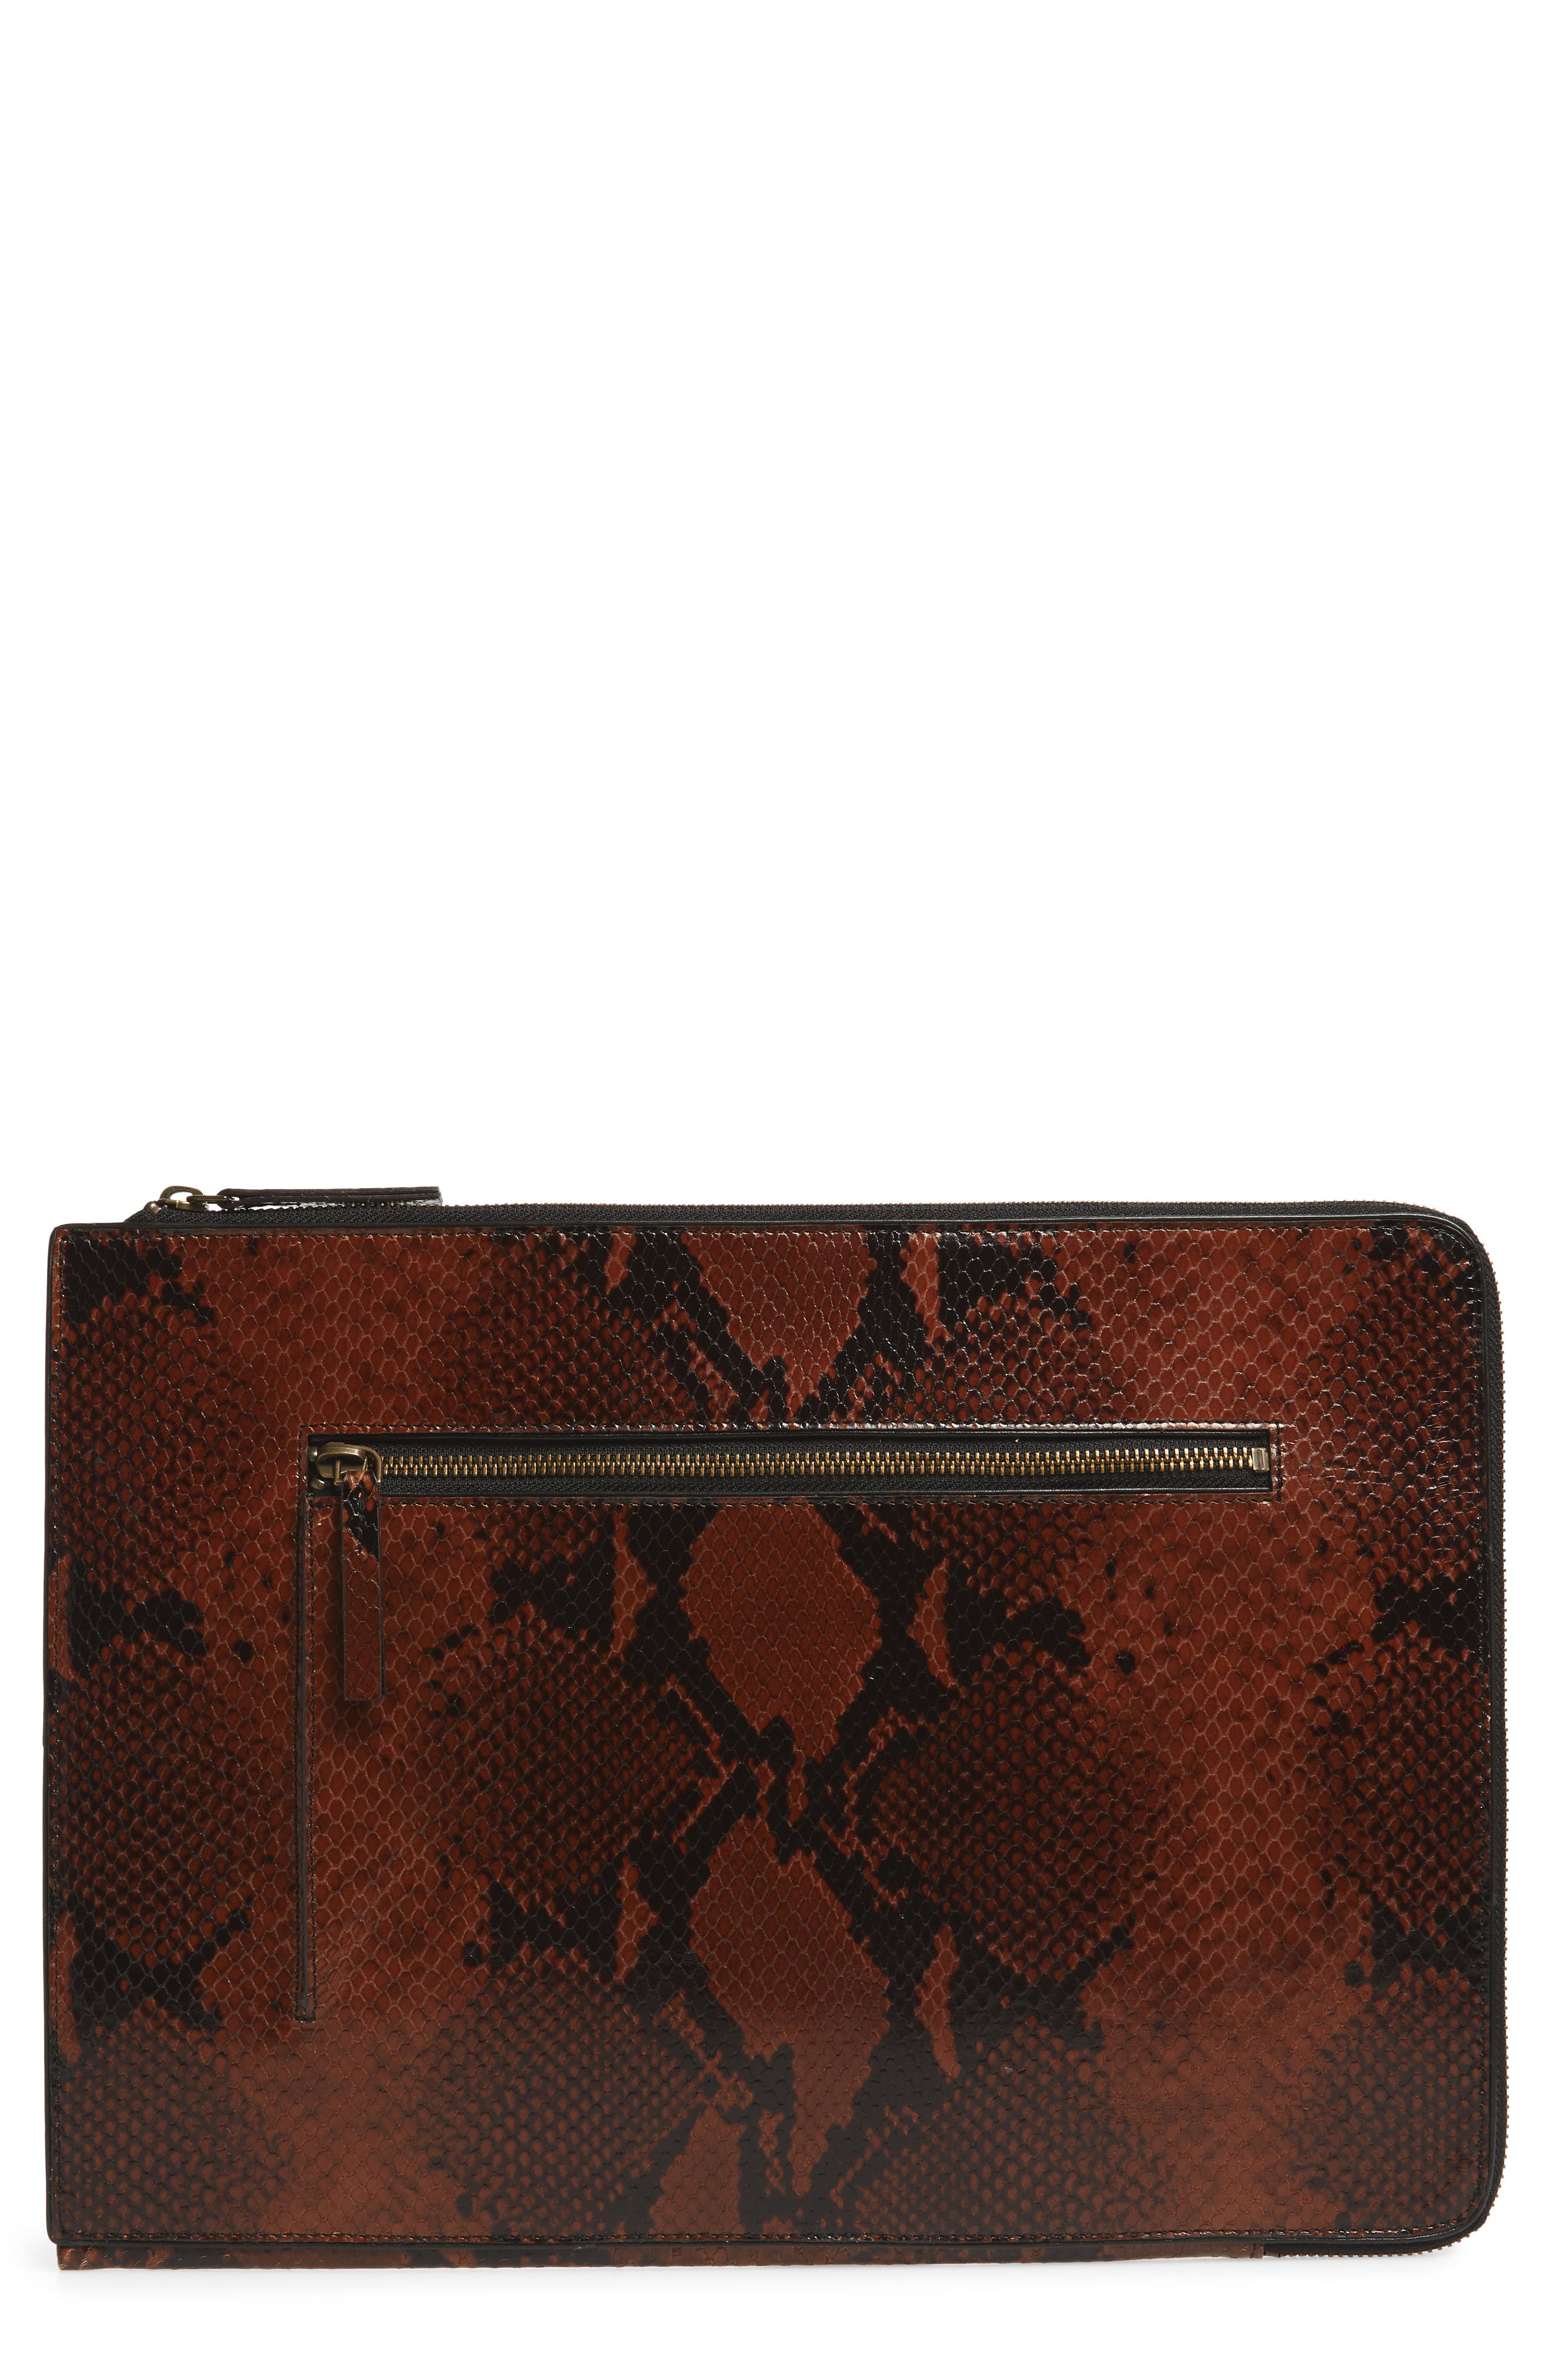 Leather Laptop Sleeve,                         Main,                         color, 200